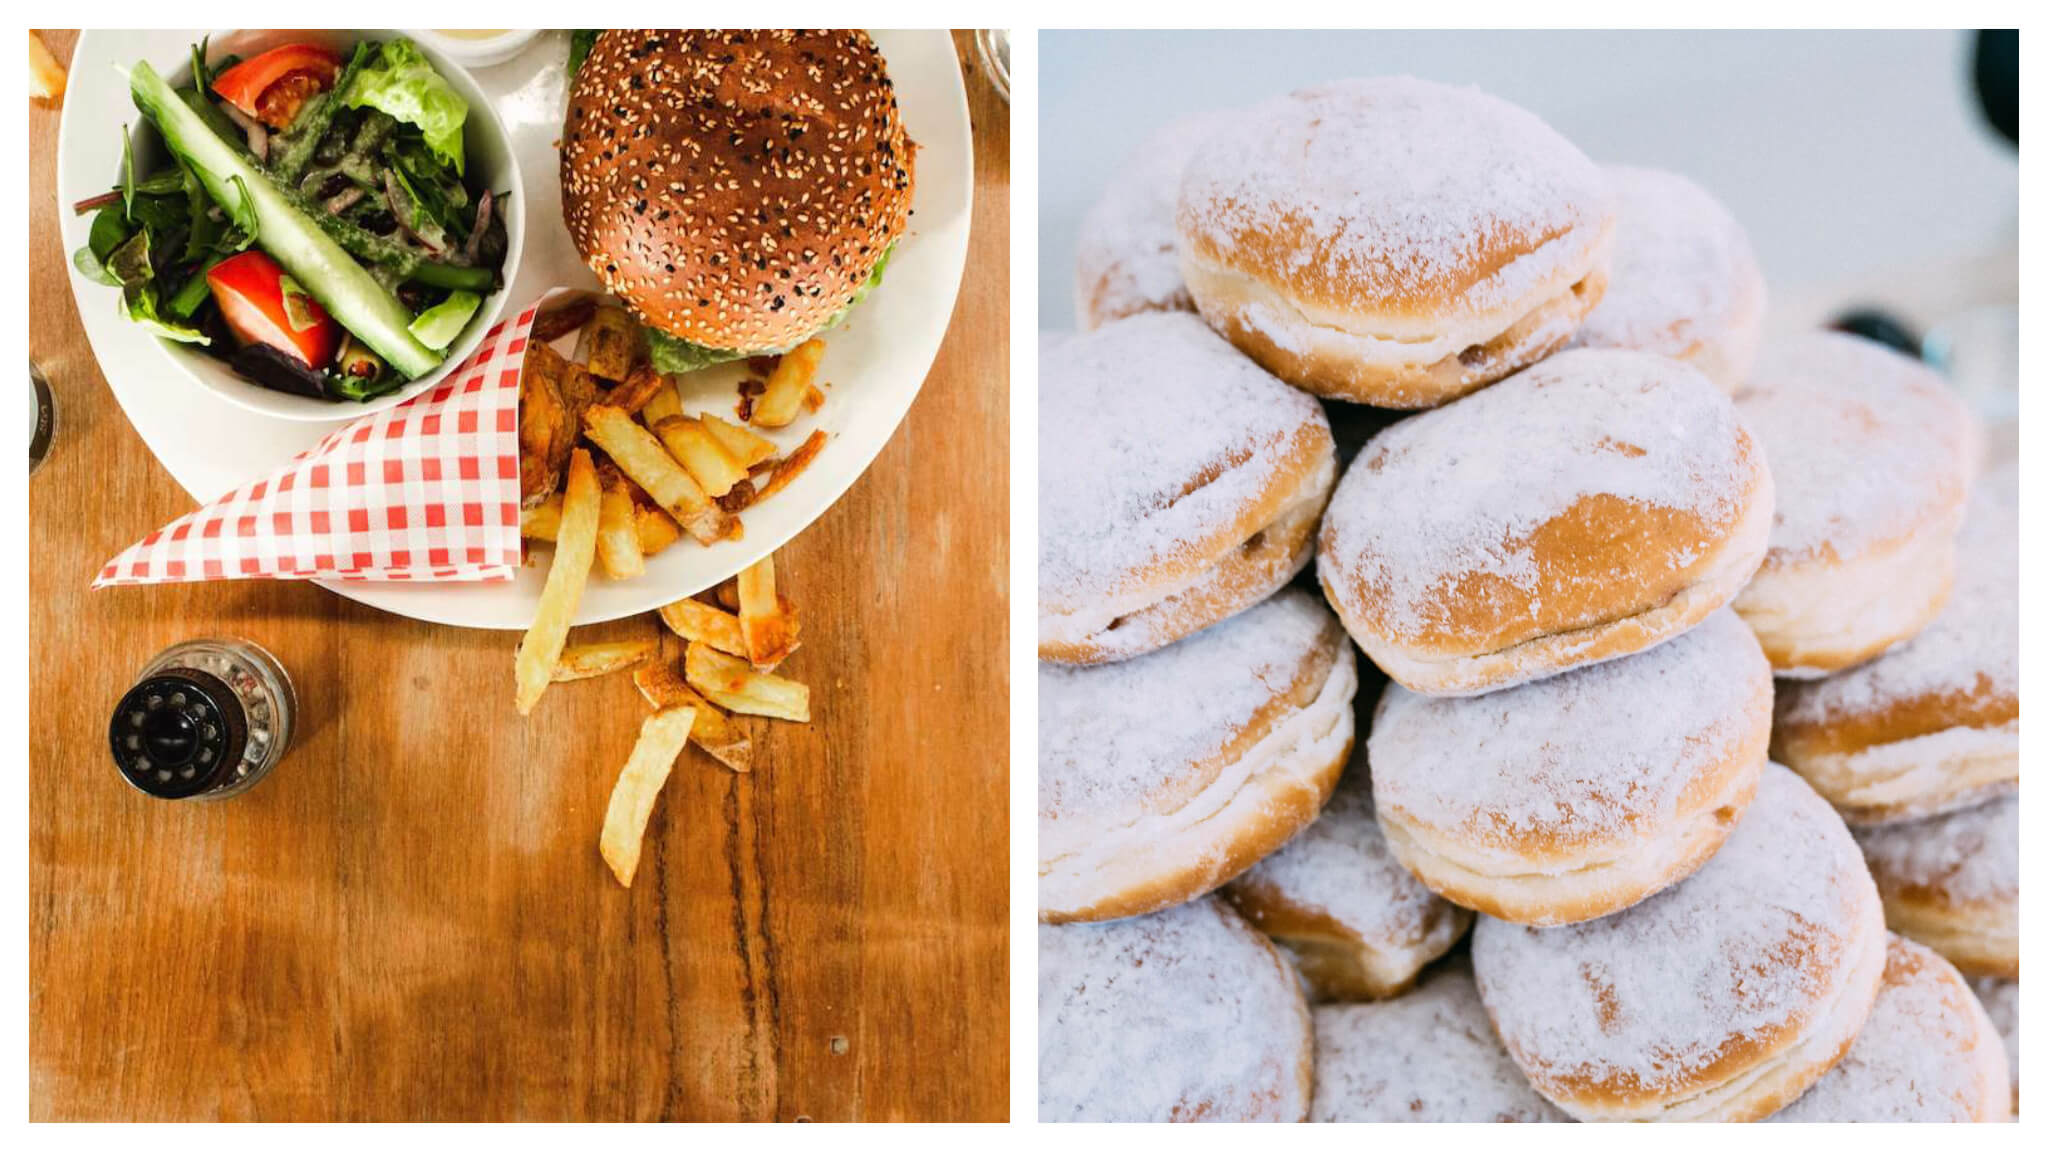 Left, burger and fries on a plate on a wooden table. Right, a pillowy stack of powdered doughnuts.